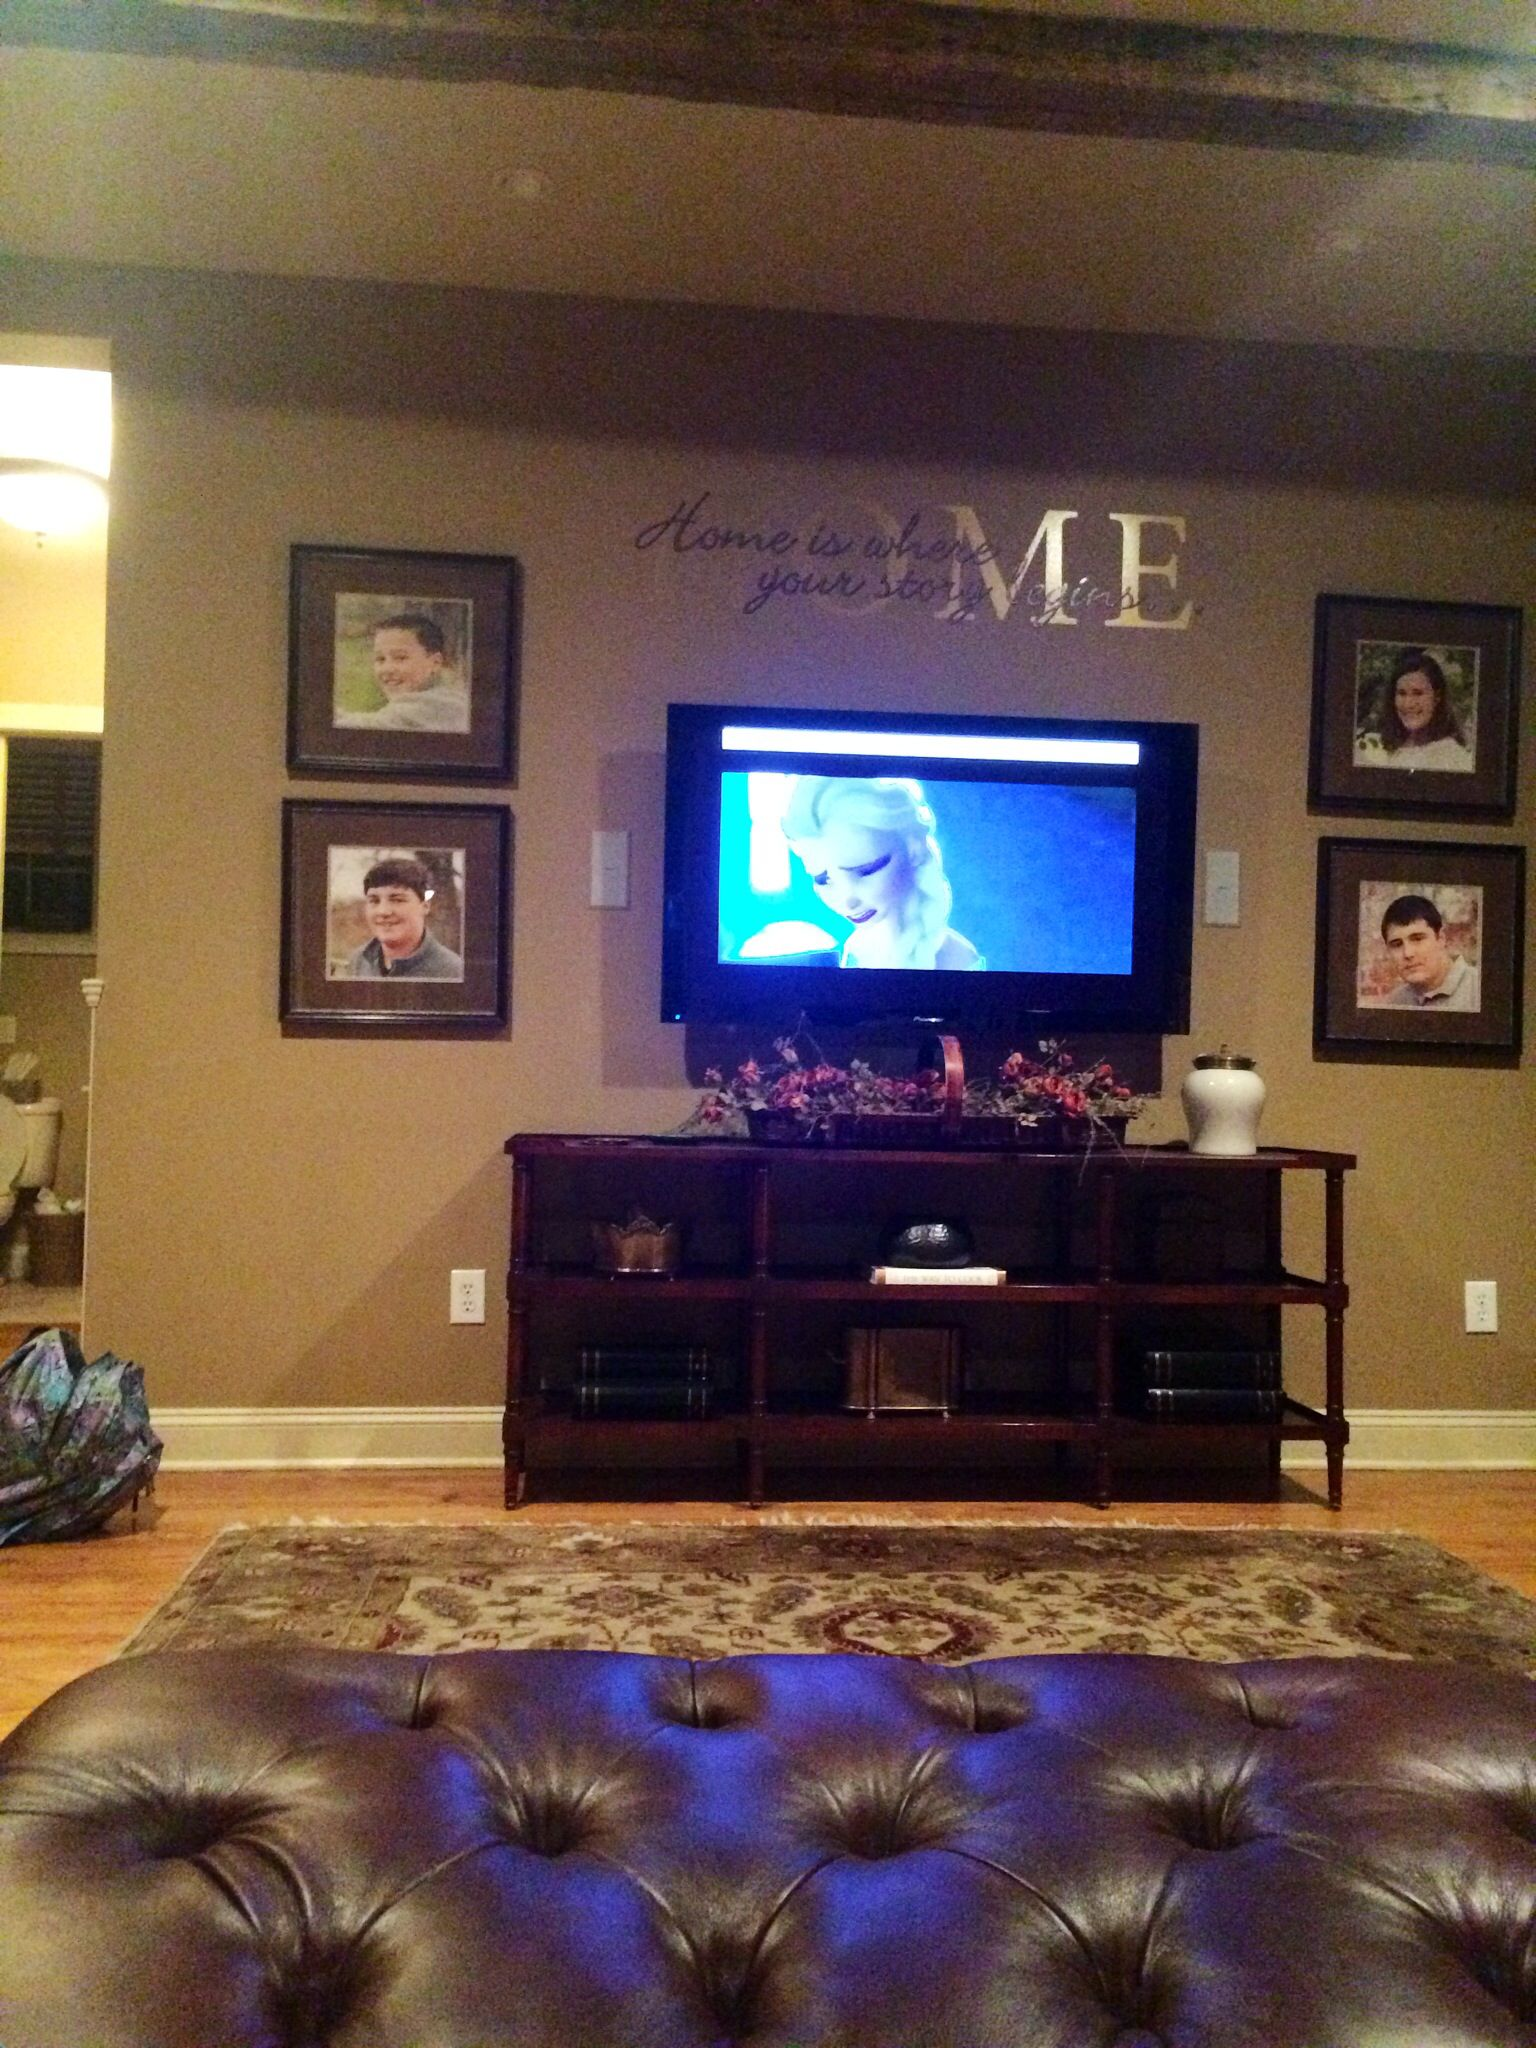 Living Room Wall Ideas With Tv Bungalow Decorating Great Idea For How To Decorate Around Your Post Includes Full Source List Frames And Art